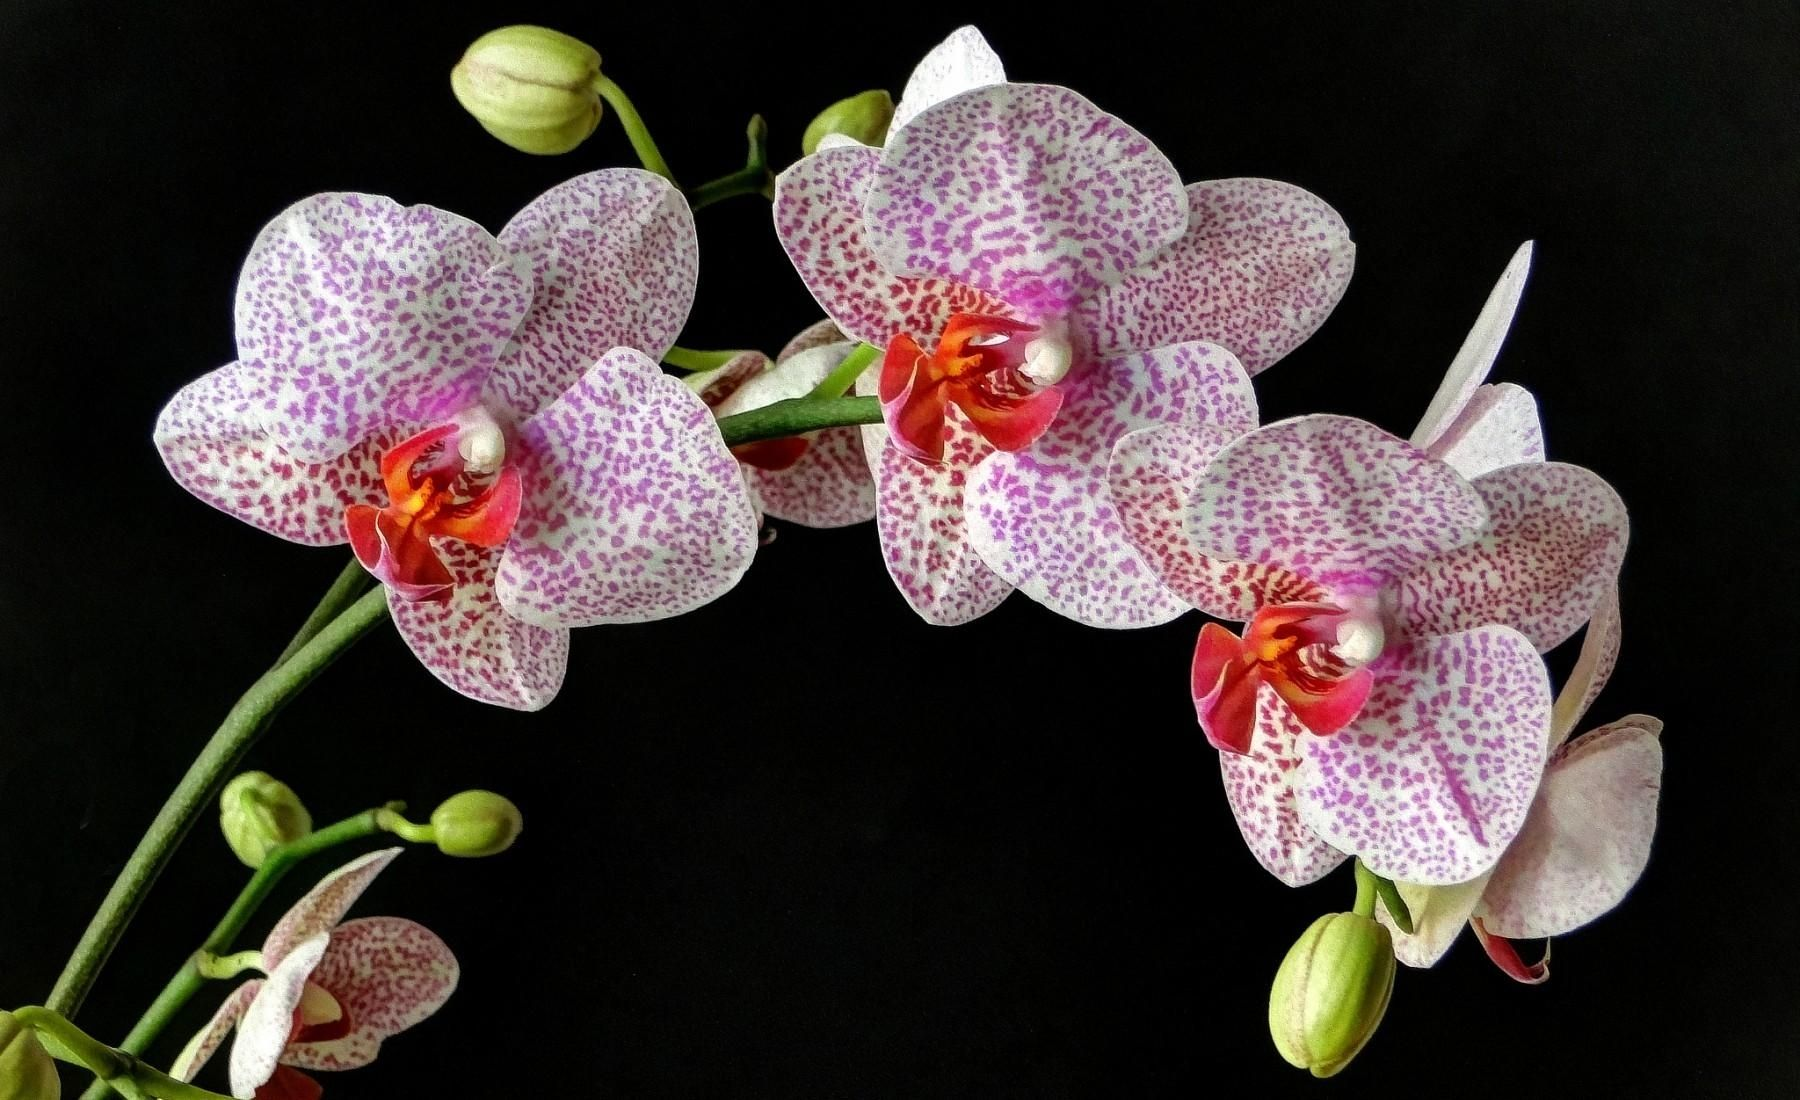 Hd Gorgeous Spotted Orchids Wallpaper Download Free 63103 Orchid Wallpaper Orchids Orchid Varieties